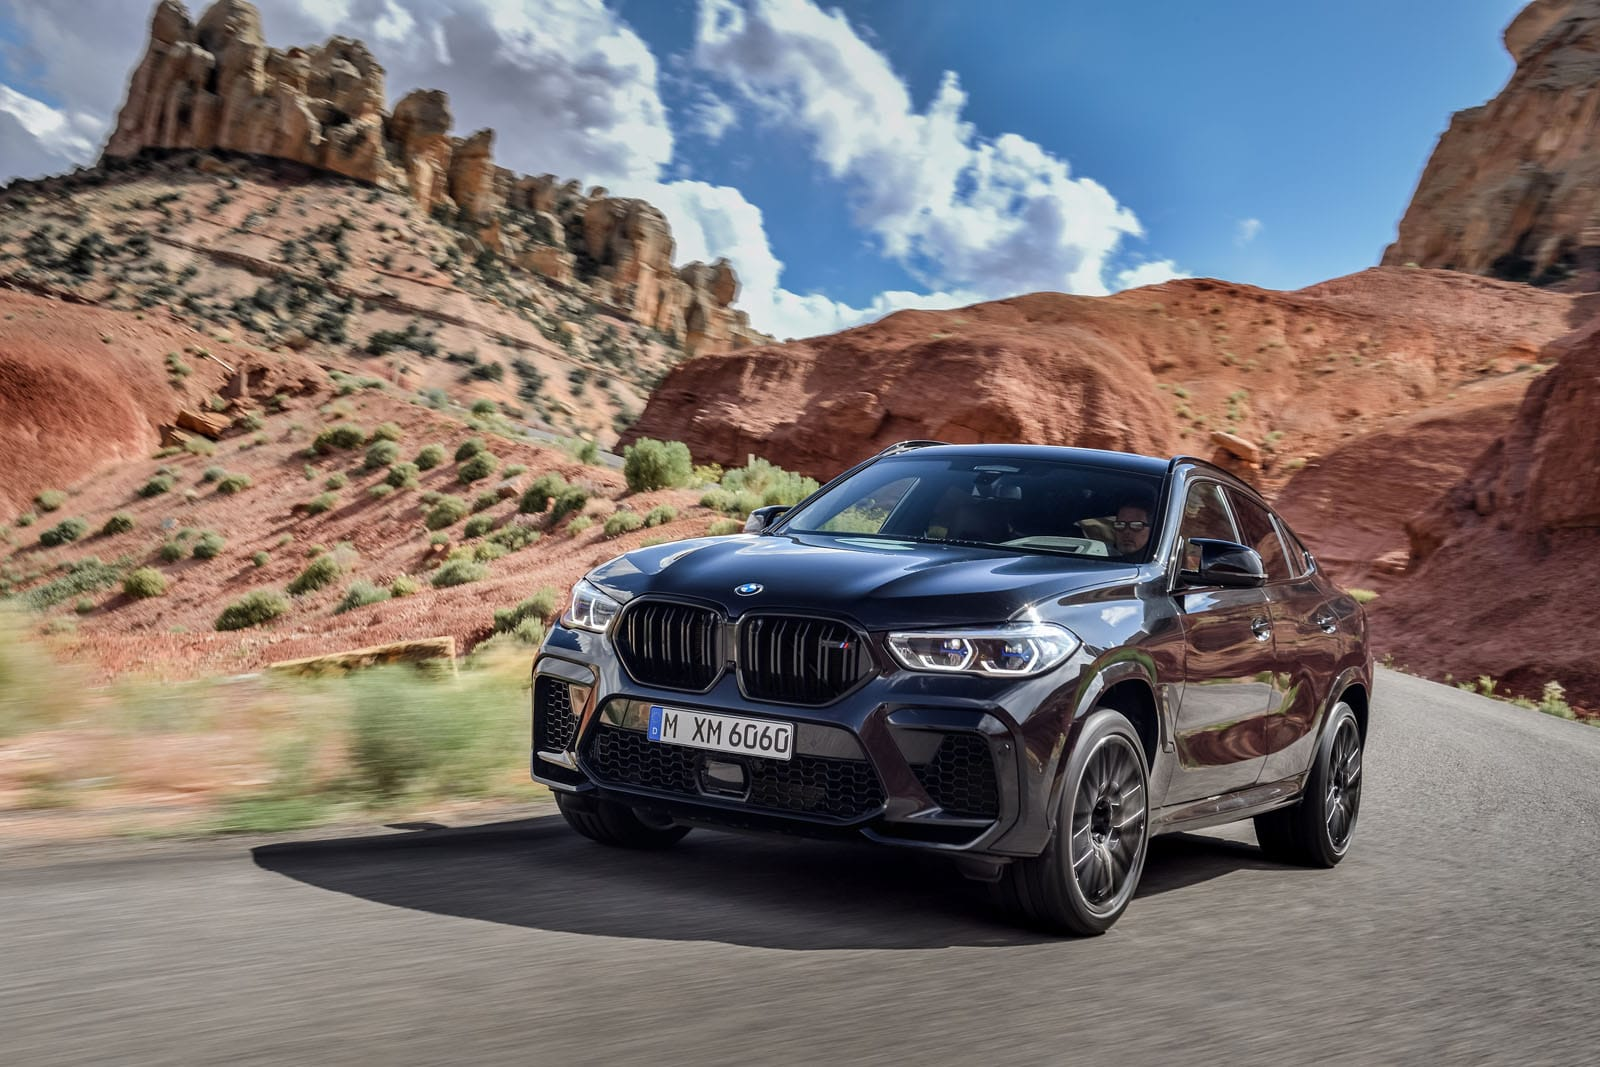 New 2020 Bmw X5 M And X6 M Unveiled Motor Illustrated